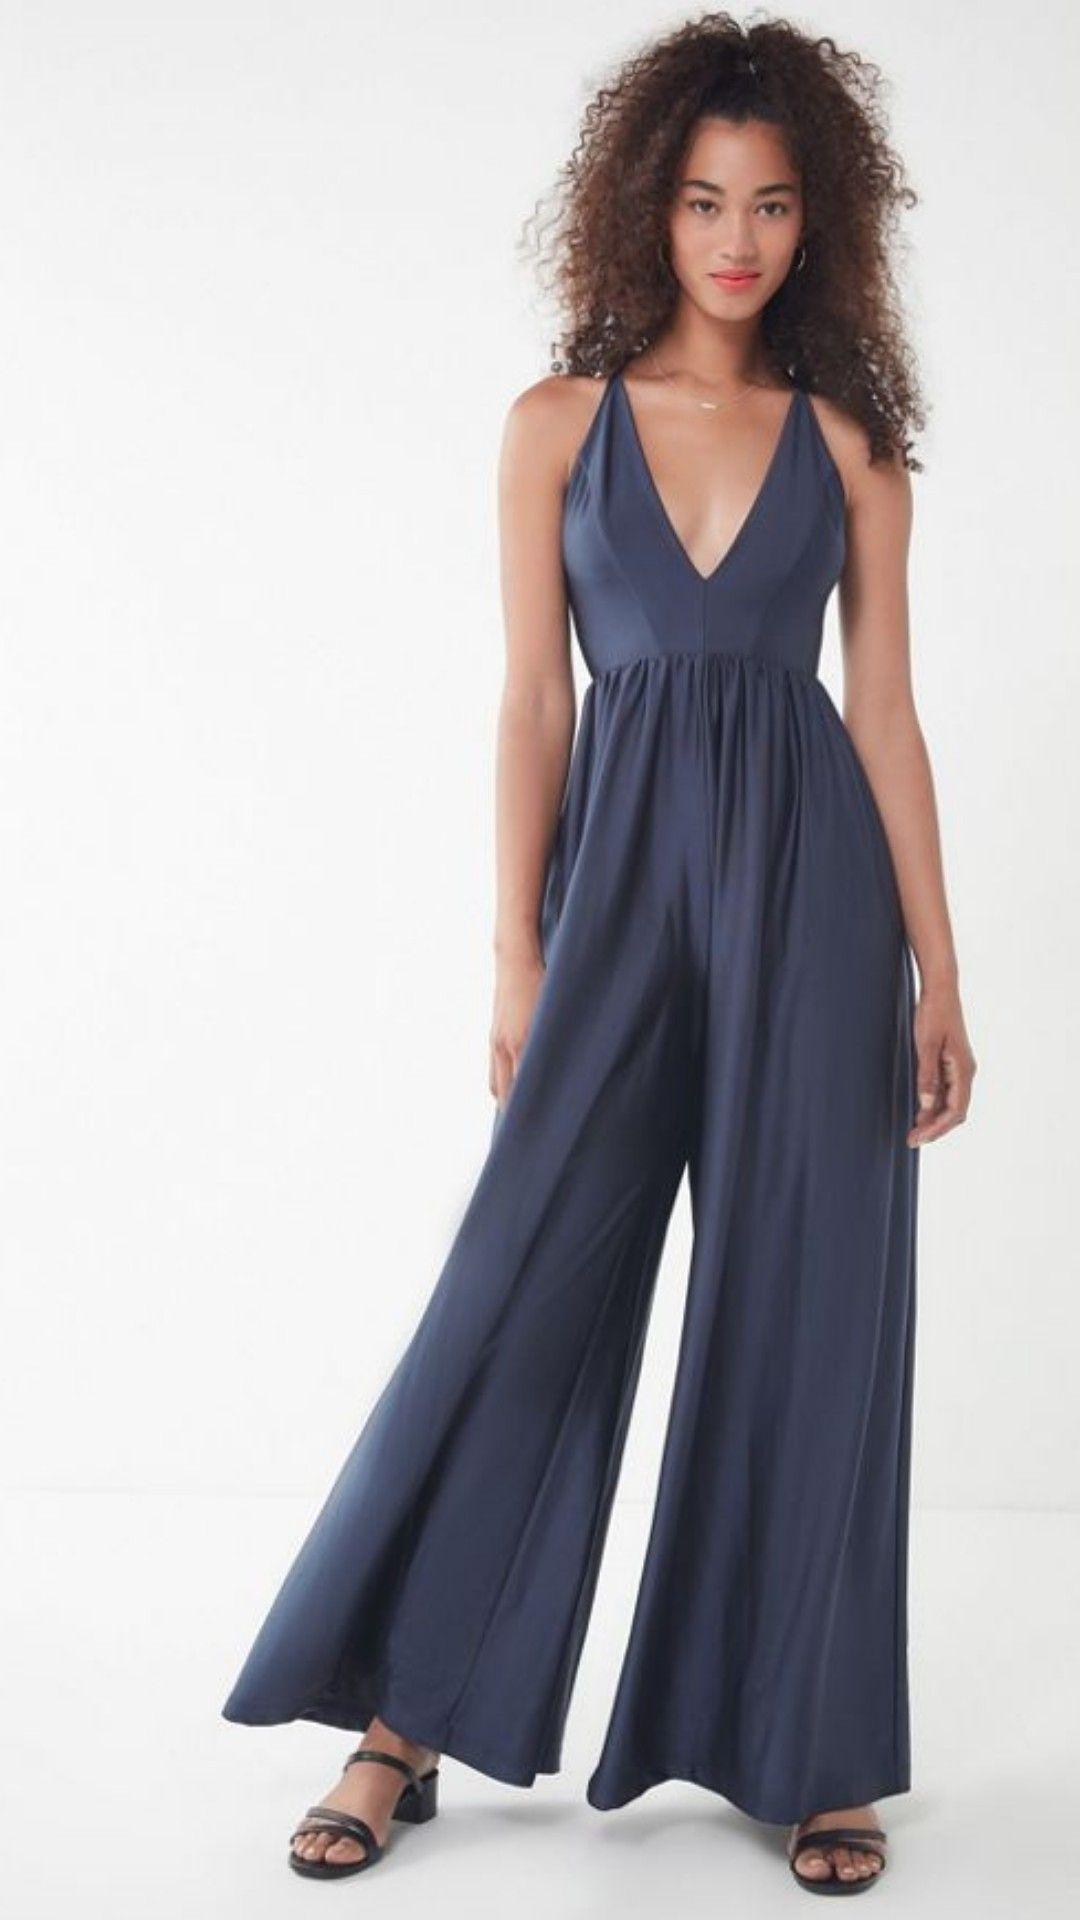 bc492479920b  70s supermodel style in this silky-look plunging jumpsuit from Urban  Outfitters. Built